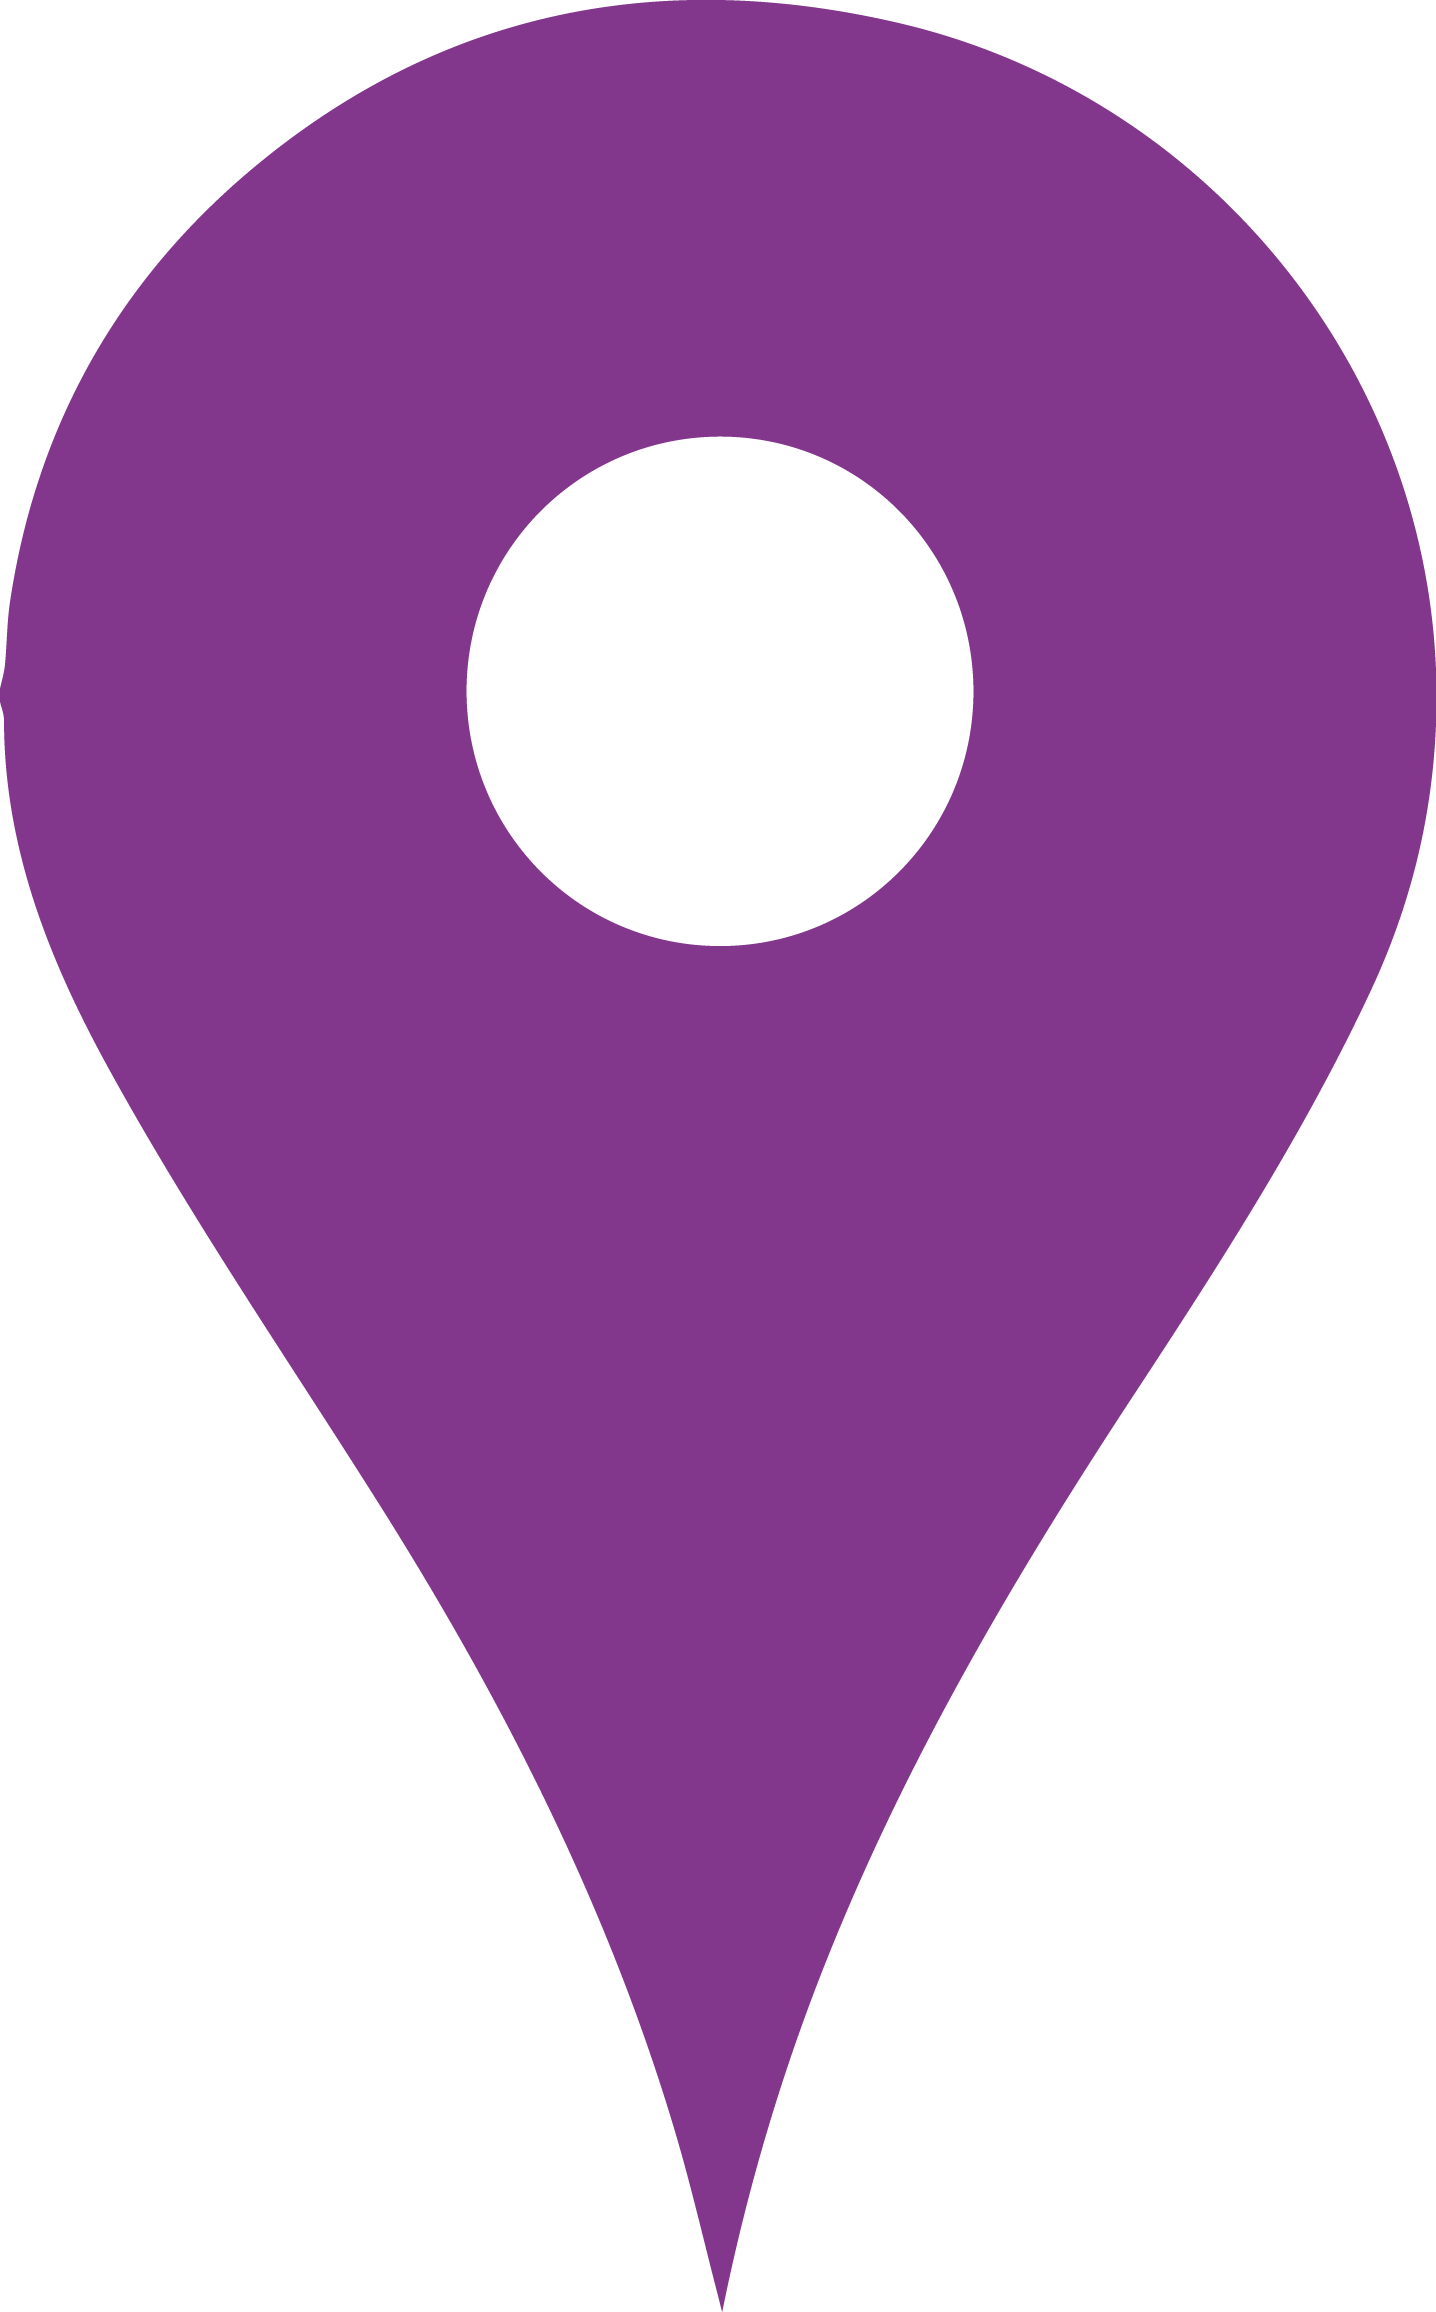 Location clipart location pointer. Locations camile thai takeaway